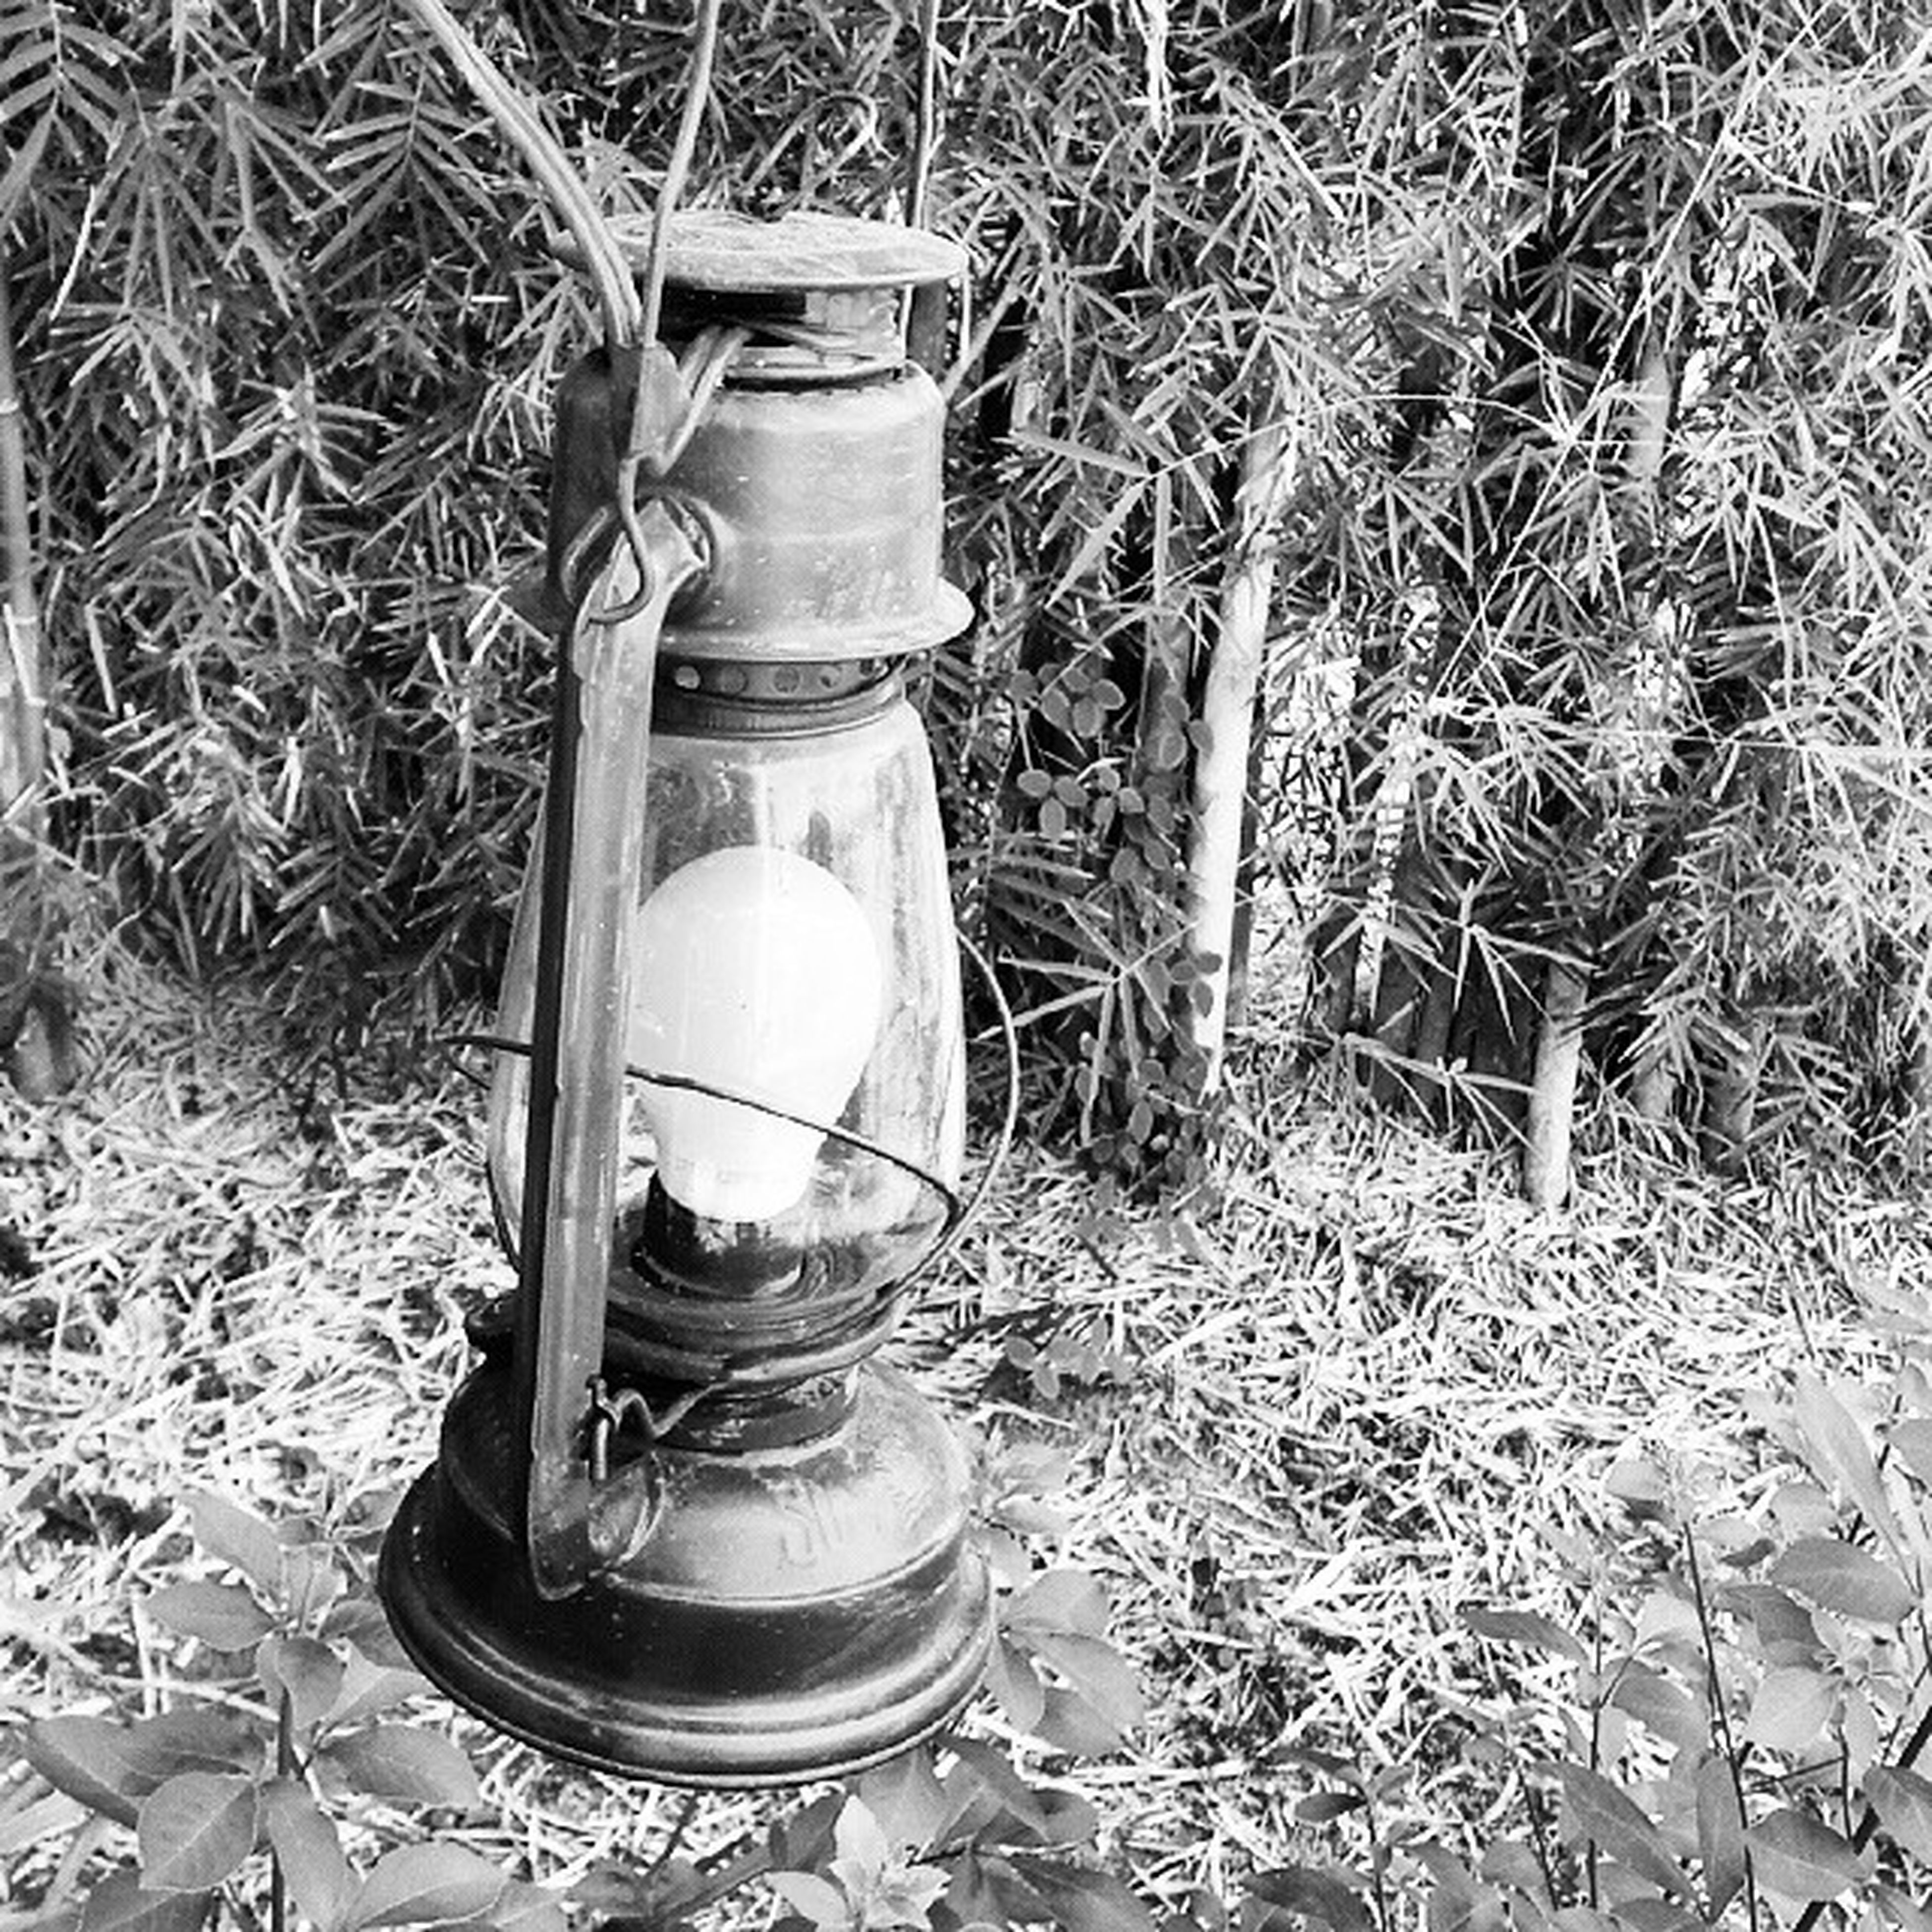 abandoned, container, metal, still life, obsolete, close-up, damaged, old, no people, field, day, plant, broken, equipment, outdoors, metallic, high angle view, man made object, front or back yard, messy